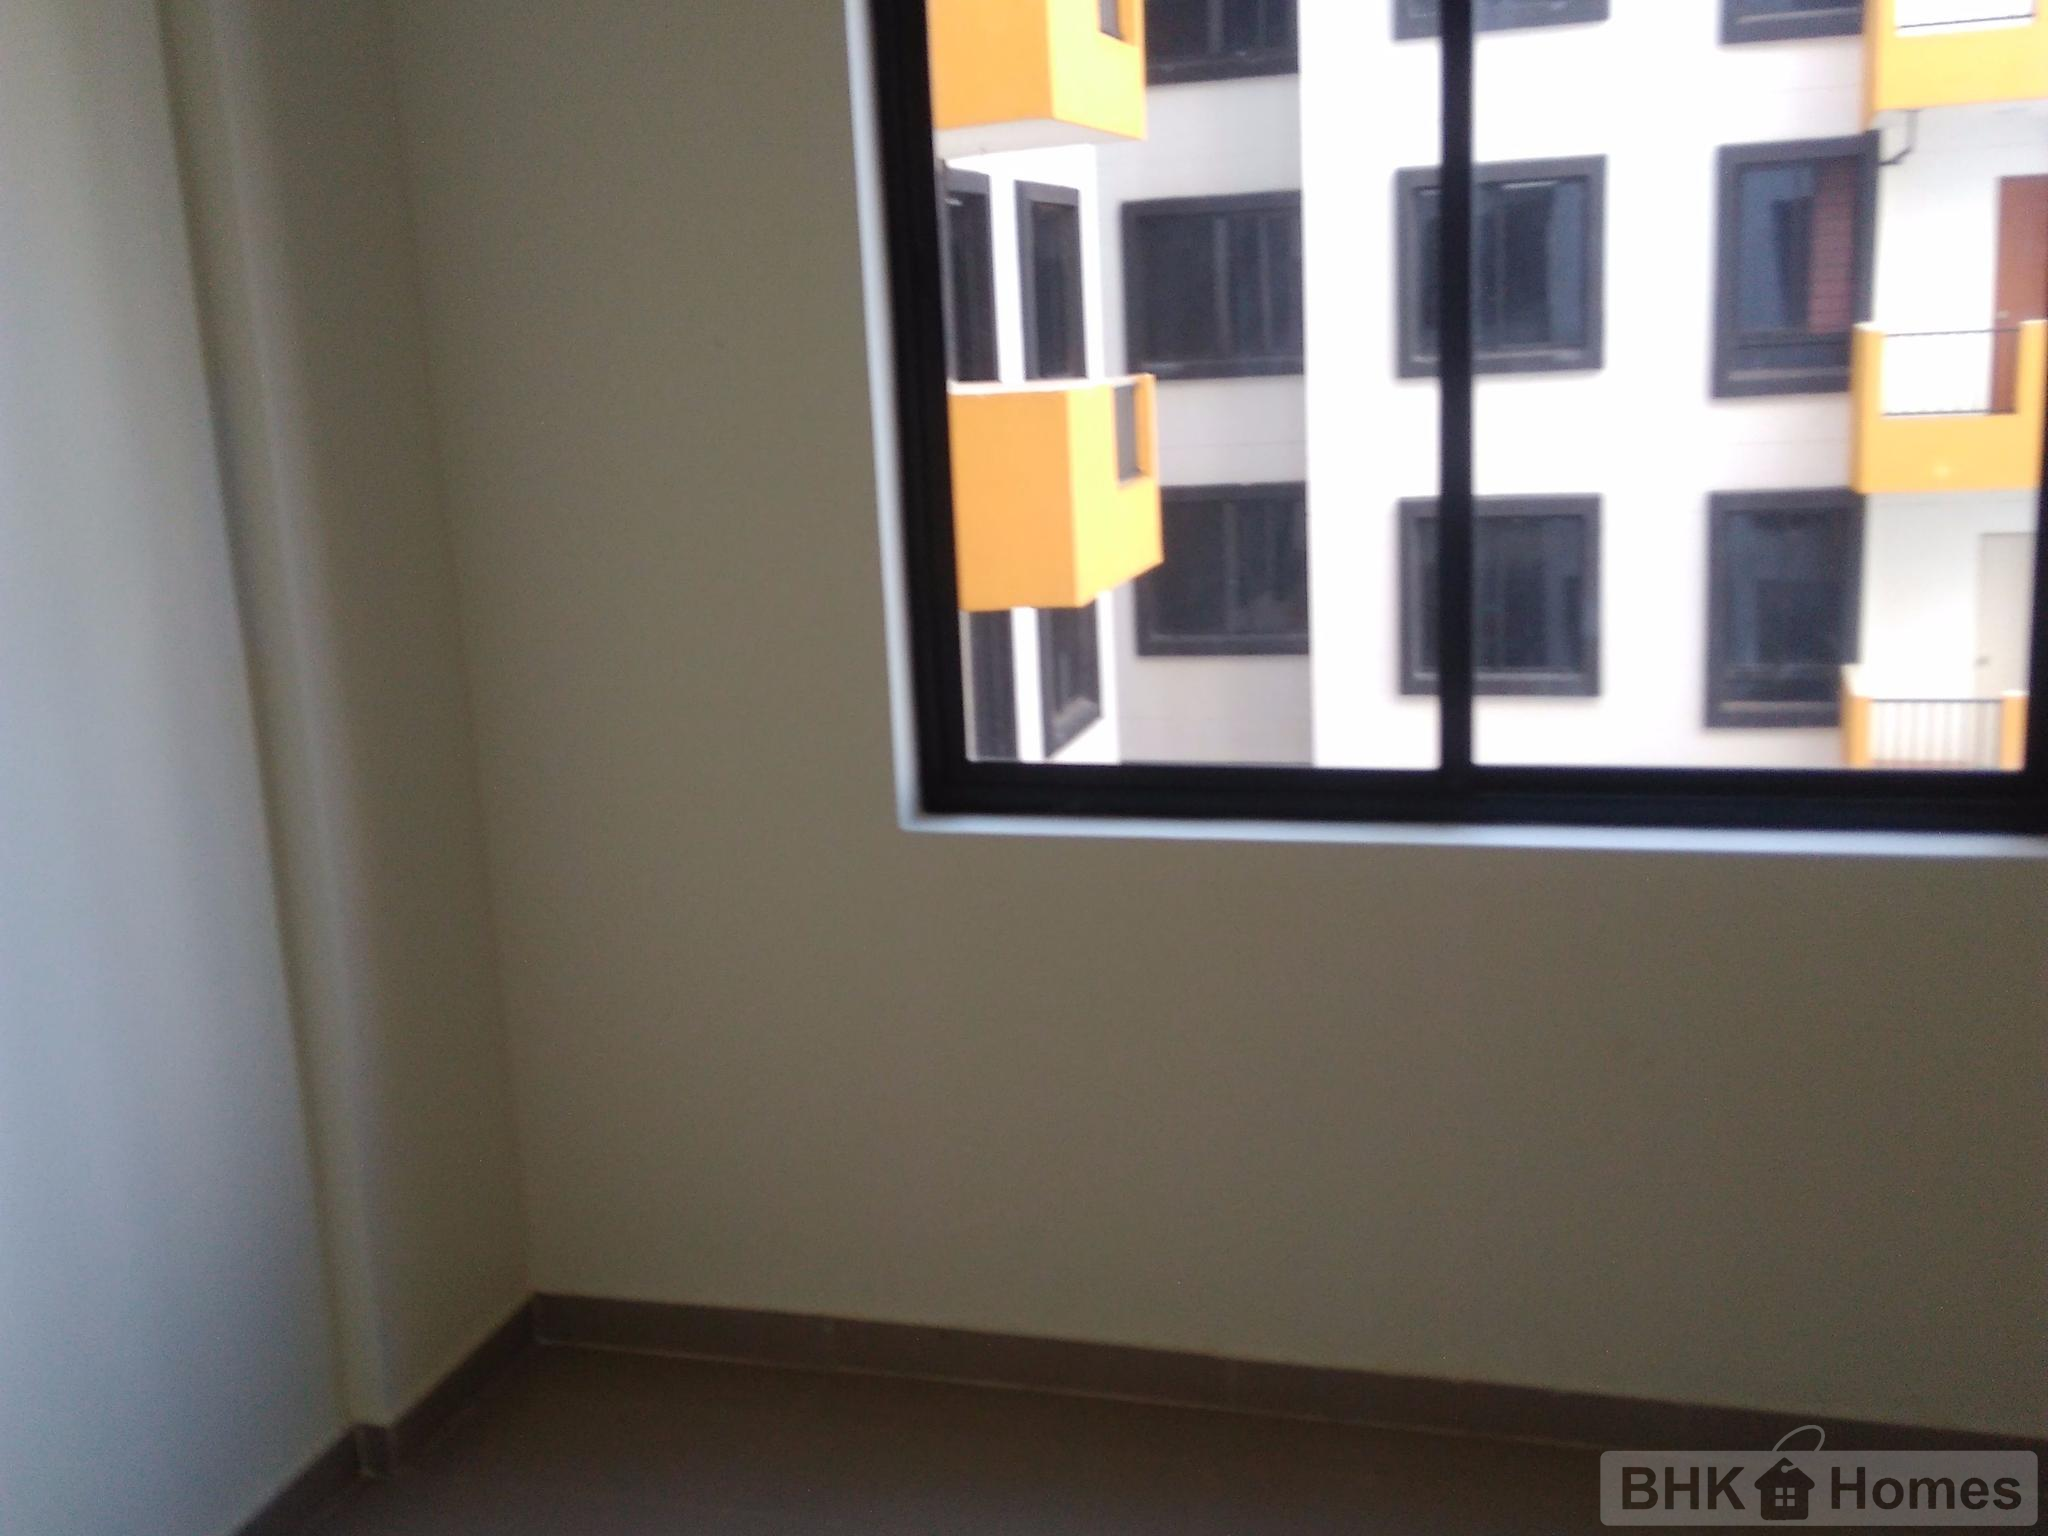 3 BHK Apartment for Sale in Provident Welworth City